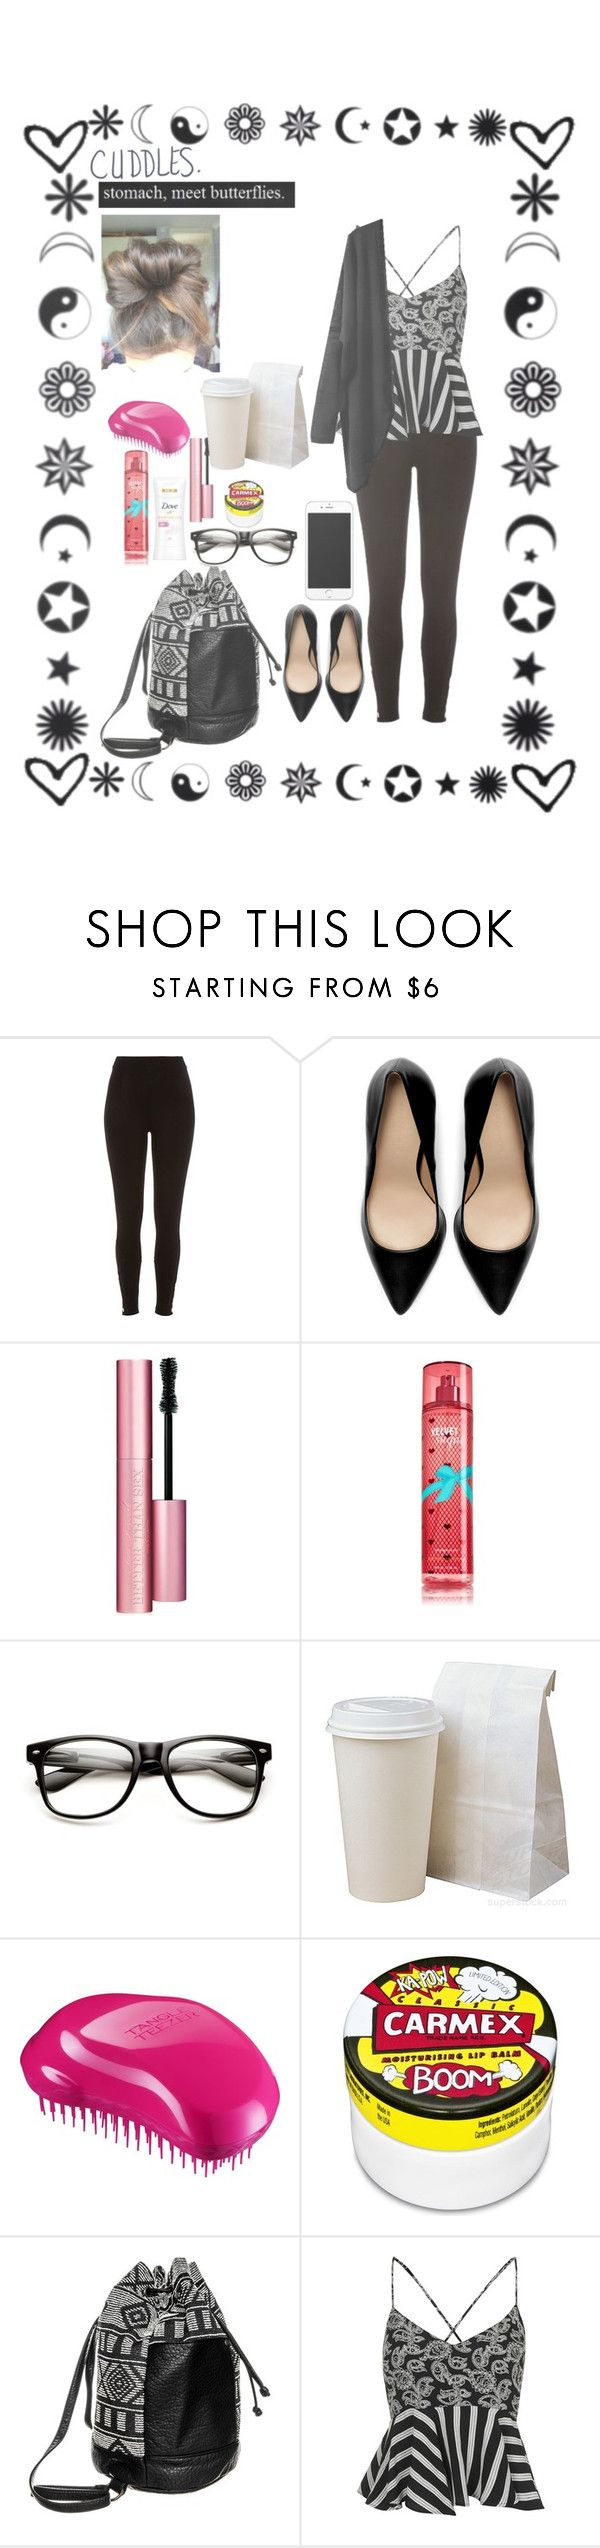 """""""untitled #49"""" by ummm-jasmine ❤ liked on Polyvore featuring River Island, Zara, Too Faced Cosmetics, Tangle Teezer, Carmex, Vans, Topshop, women's clothing, women and female"""